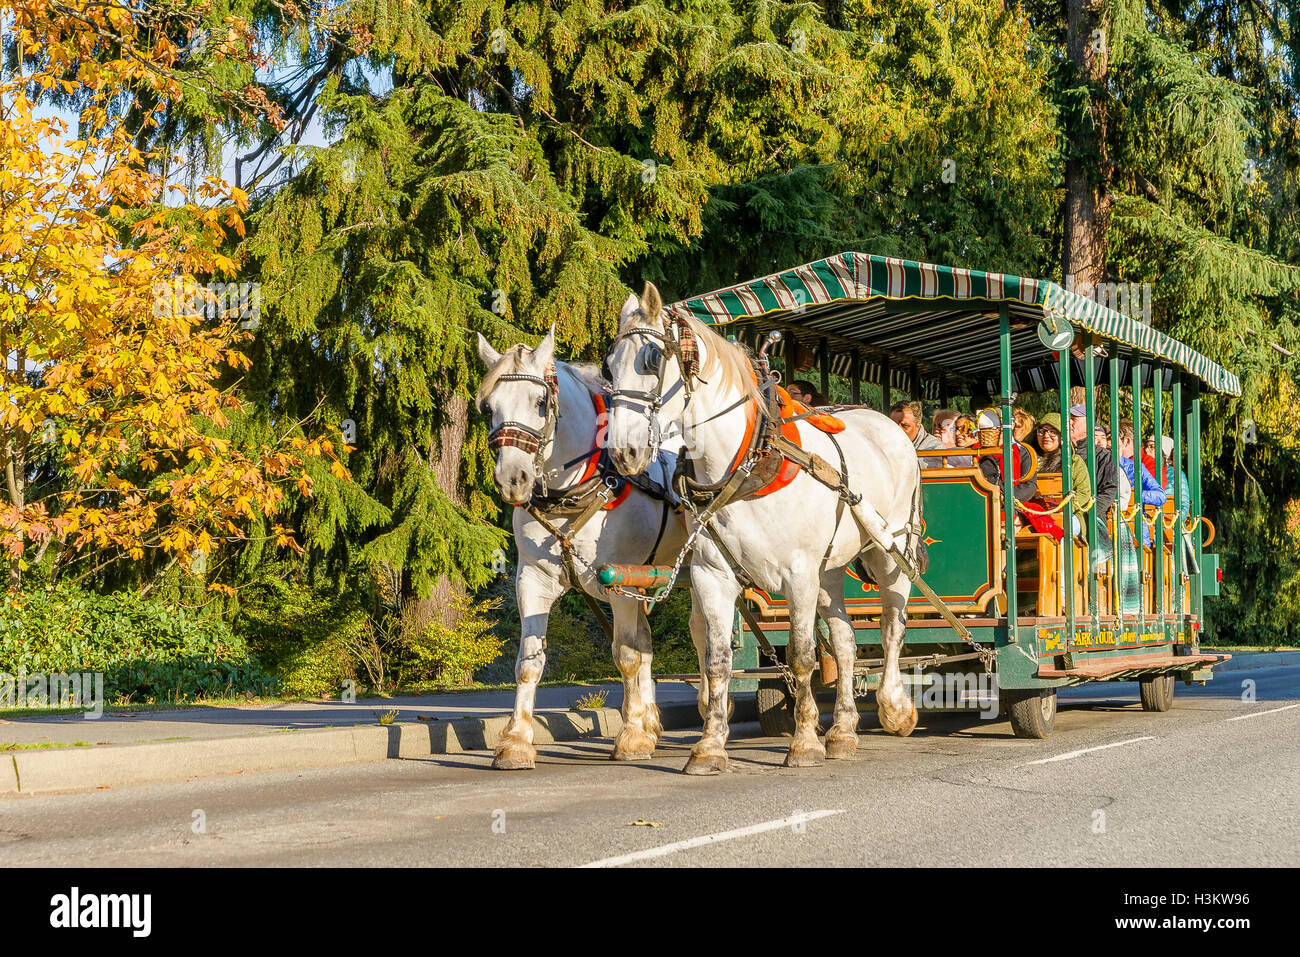 Horse drawn sightseeing tour, Stanley Park, Vancouver, British Columbia, Canada. - Stock Image